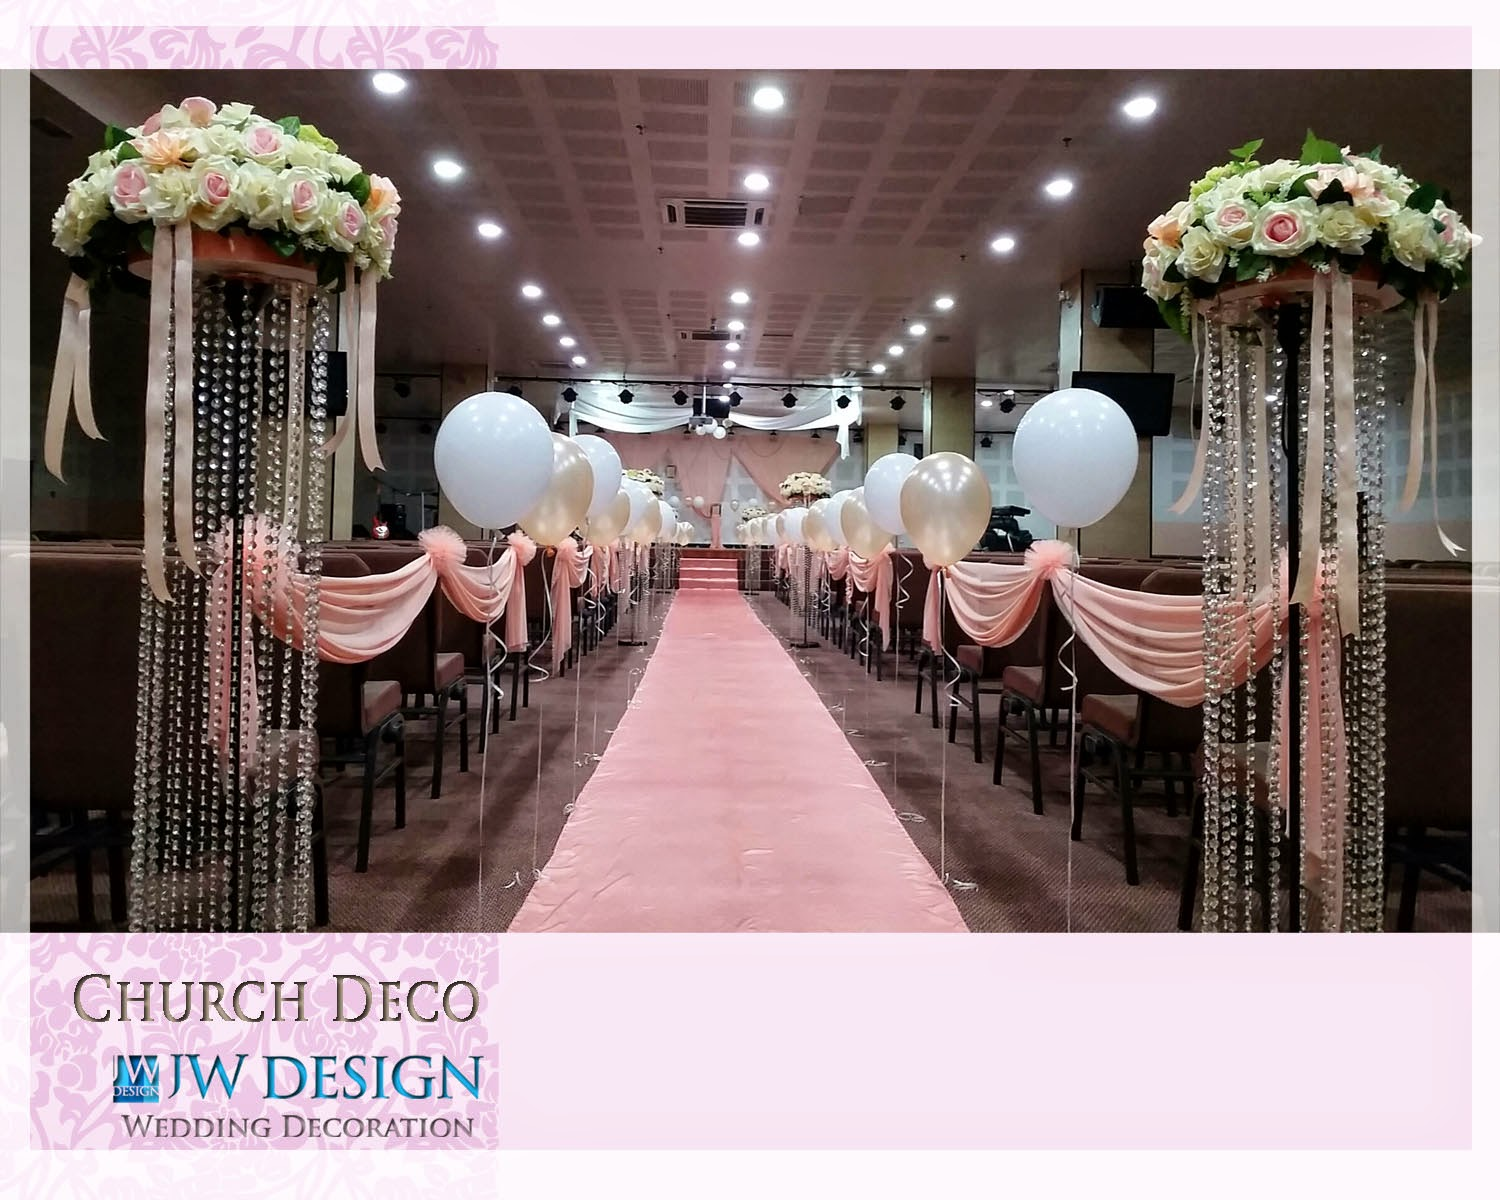 Wedding decoration johor bahru choice image wedding dress wedding decoration johor bahru image collections wedding dress wedding decoration johor bahru gallery wedding dress decoration junglespirit